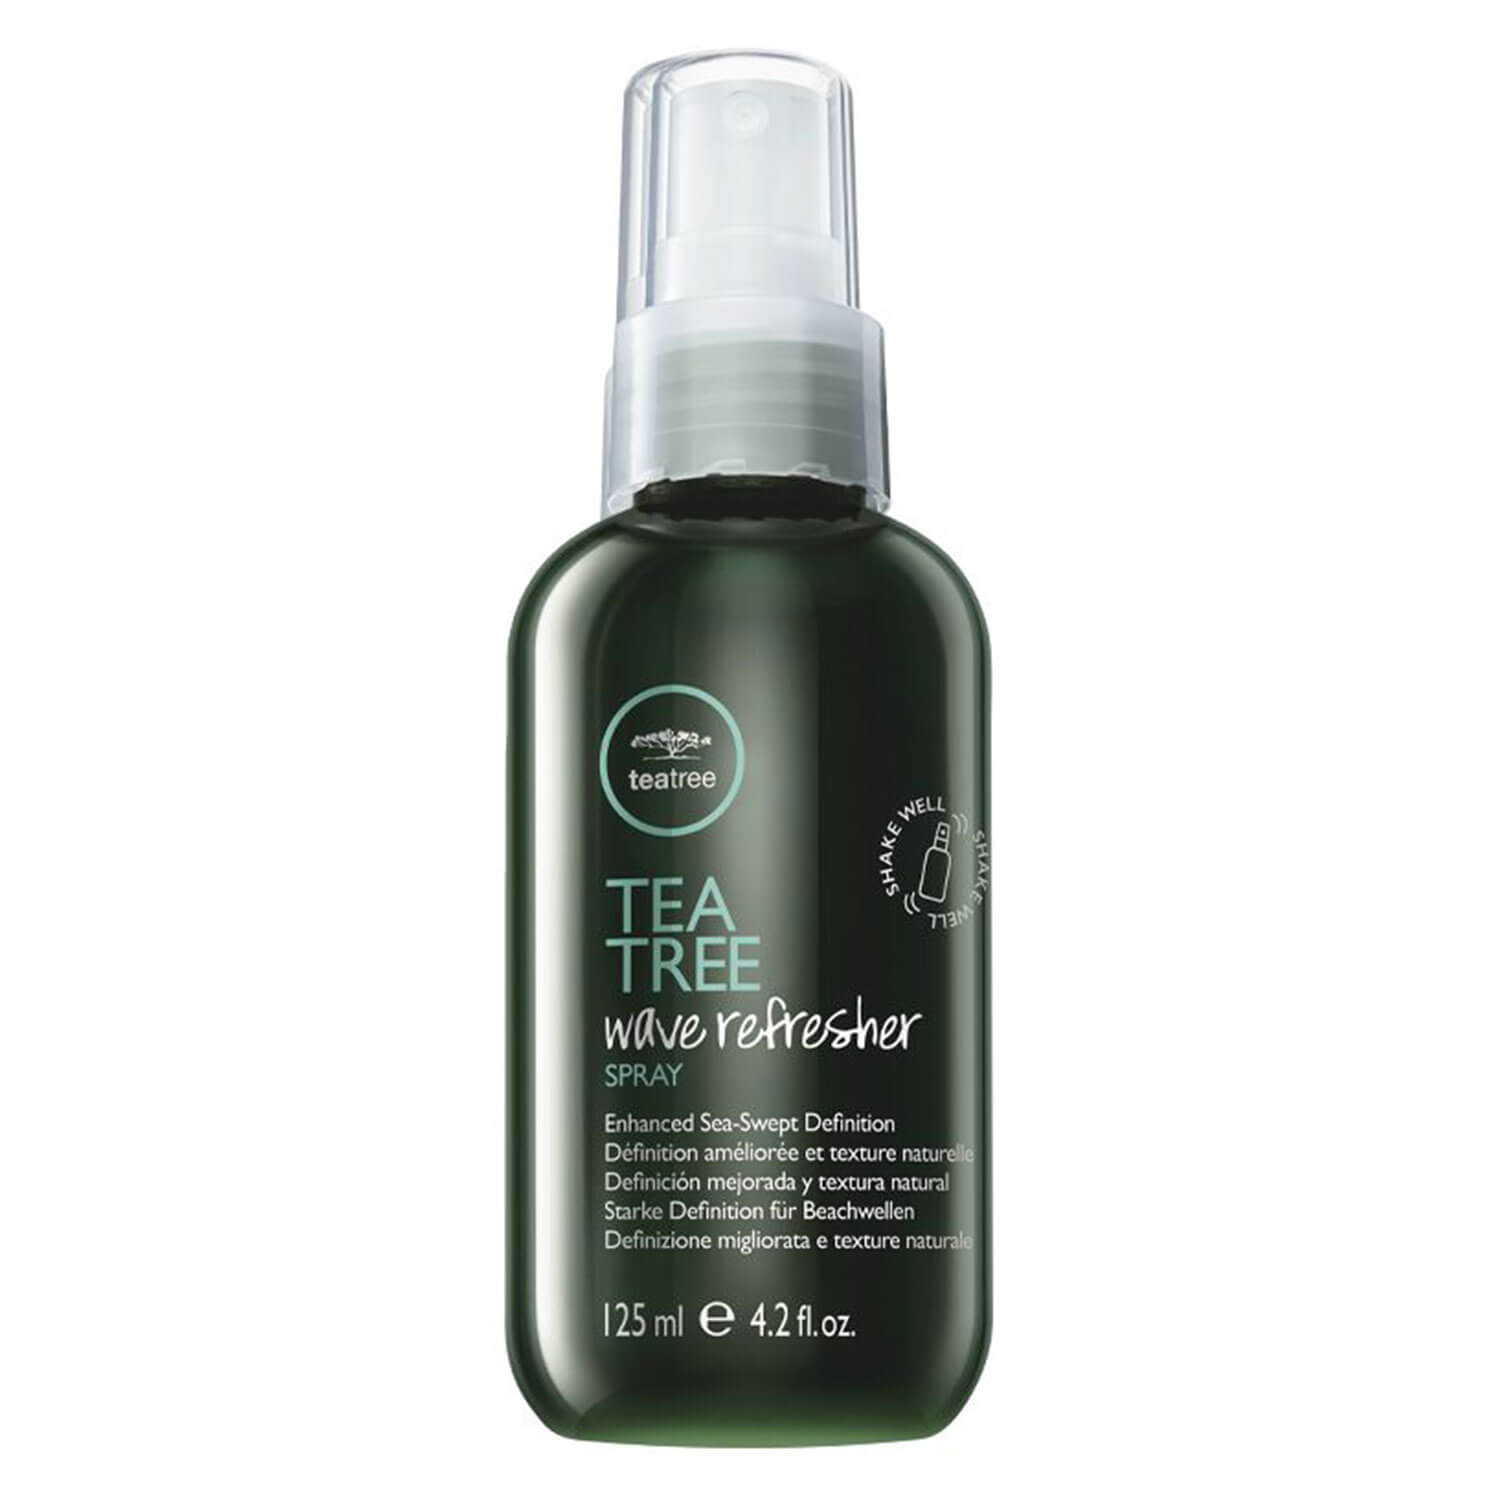 Tea Tree Special - Wave Refresher Spray